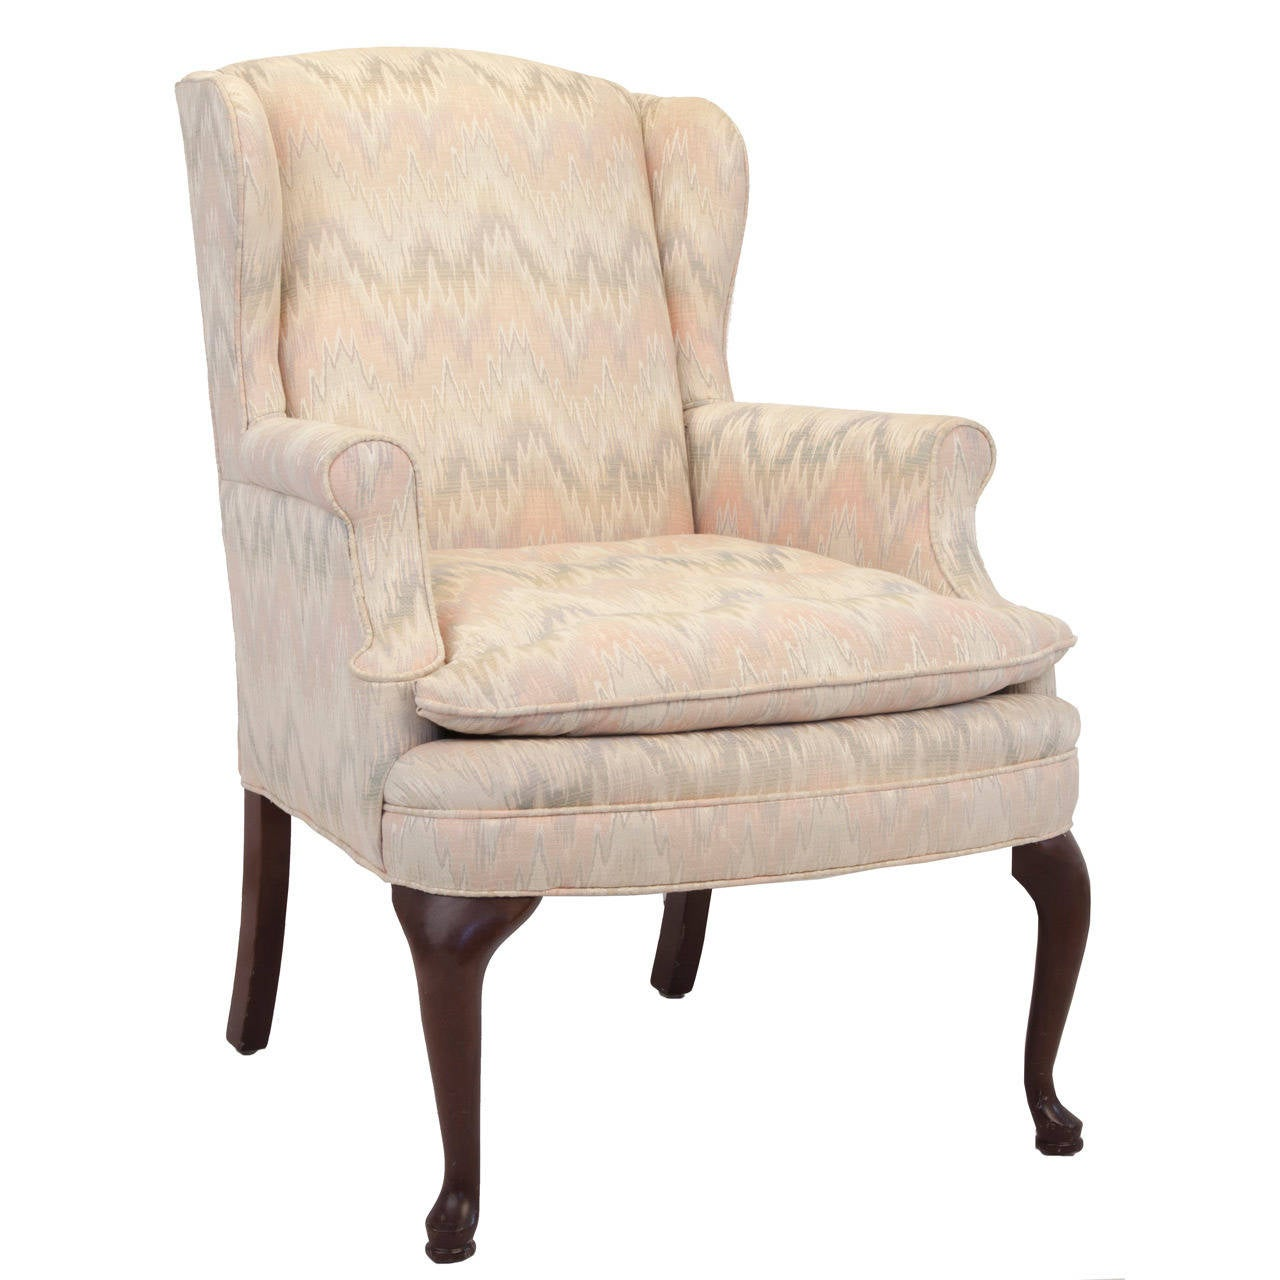 Queen Anne Wingback Chair Queen Anne Style Upholstered Wing Chair At 1stdibs